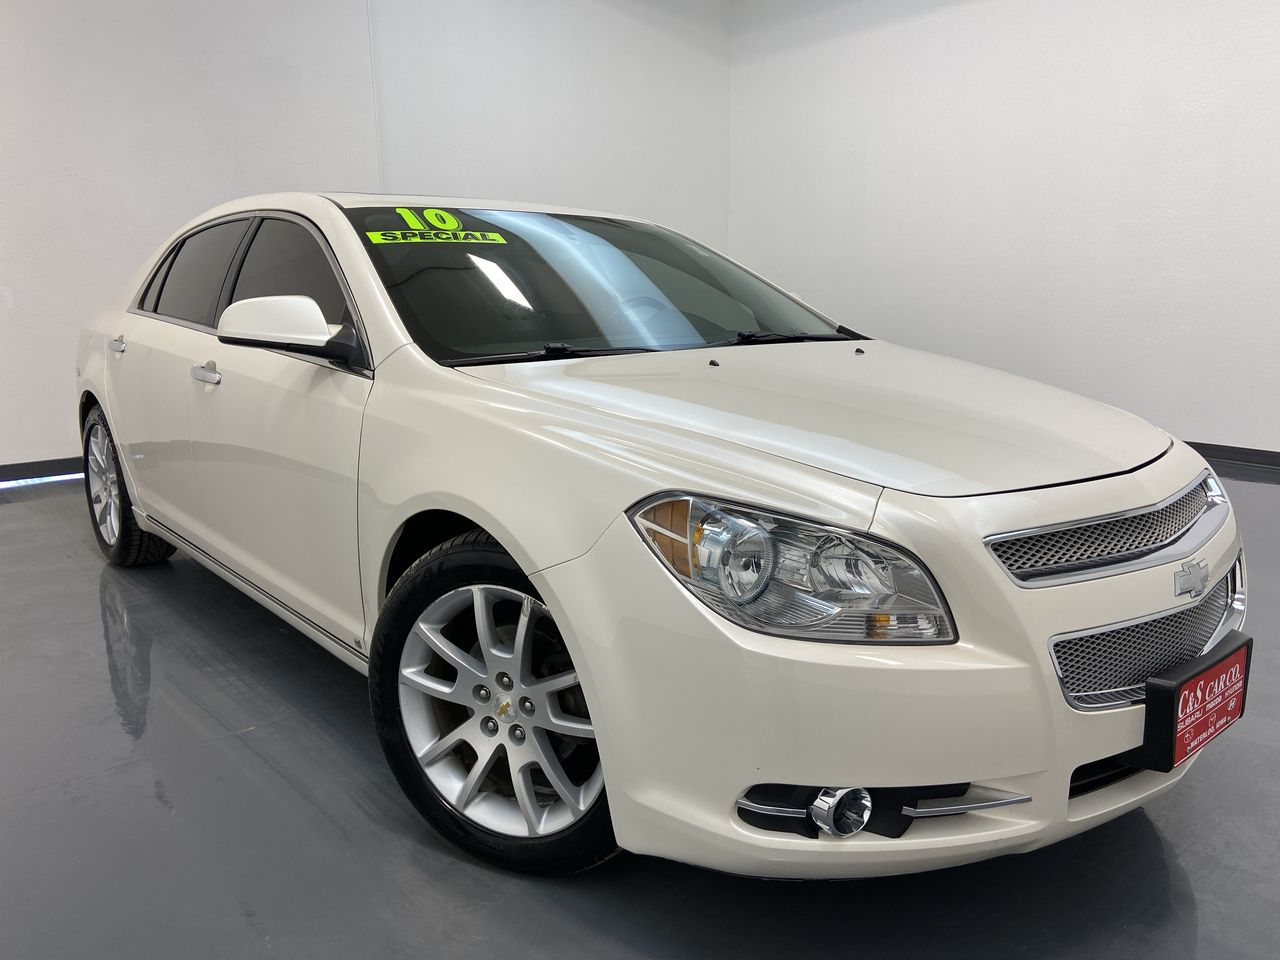 2010 Chevrolet Malibu 4D Sedan  - SB8413C  - C & S Car Company